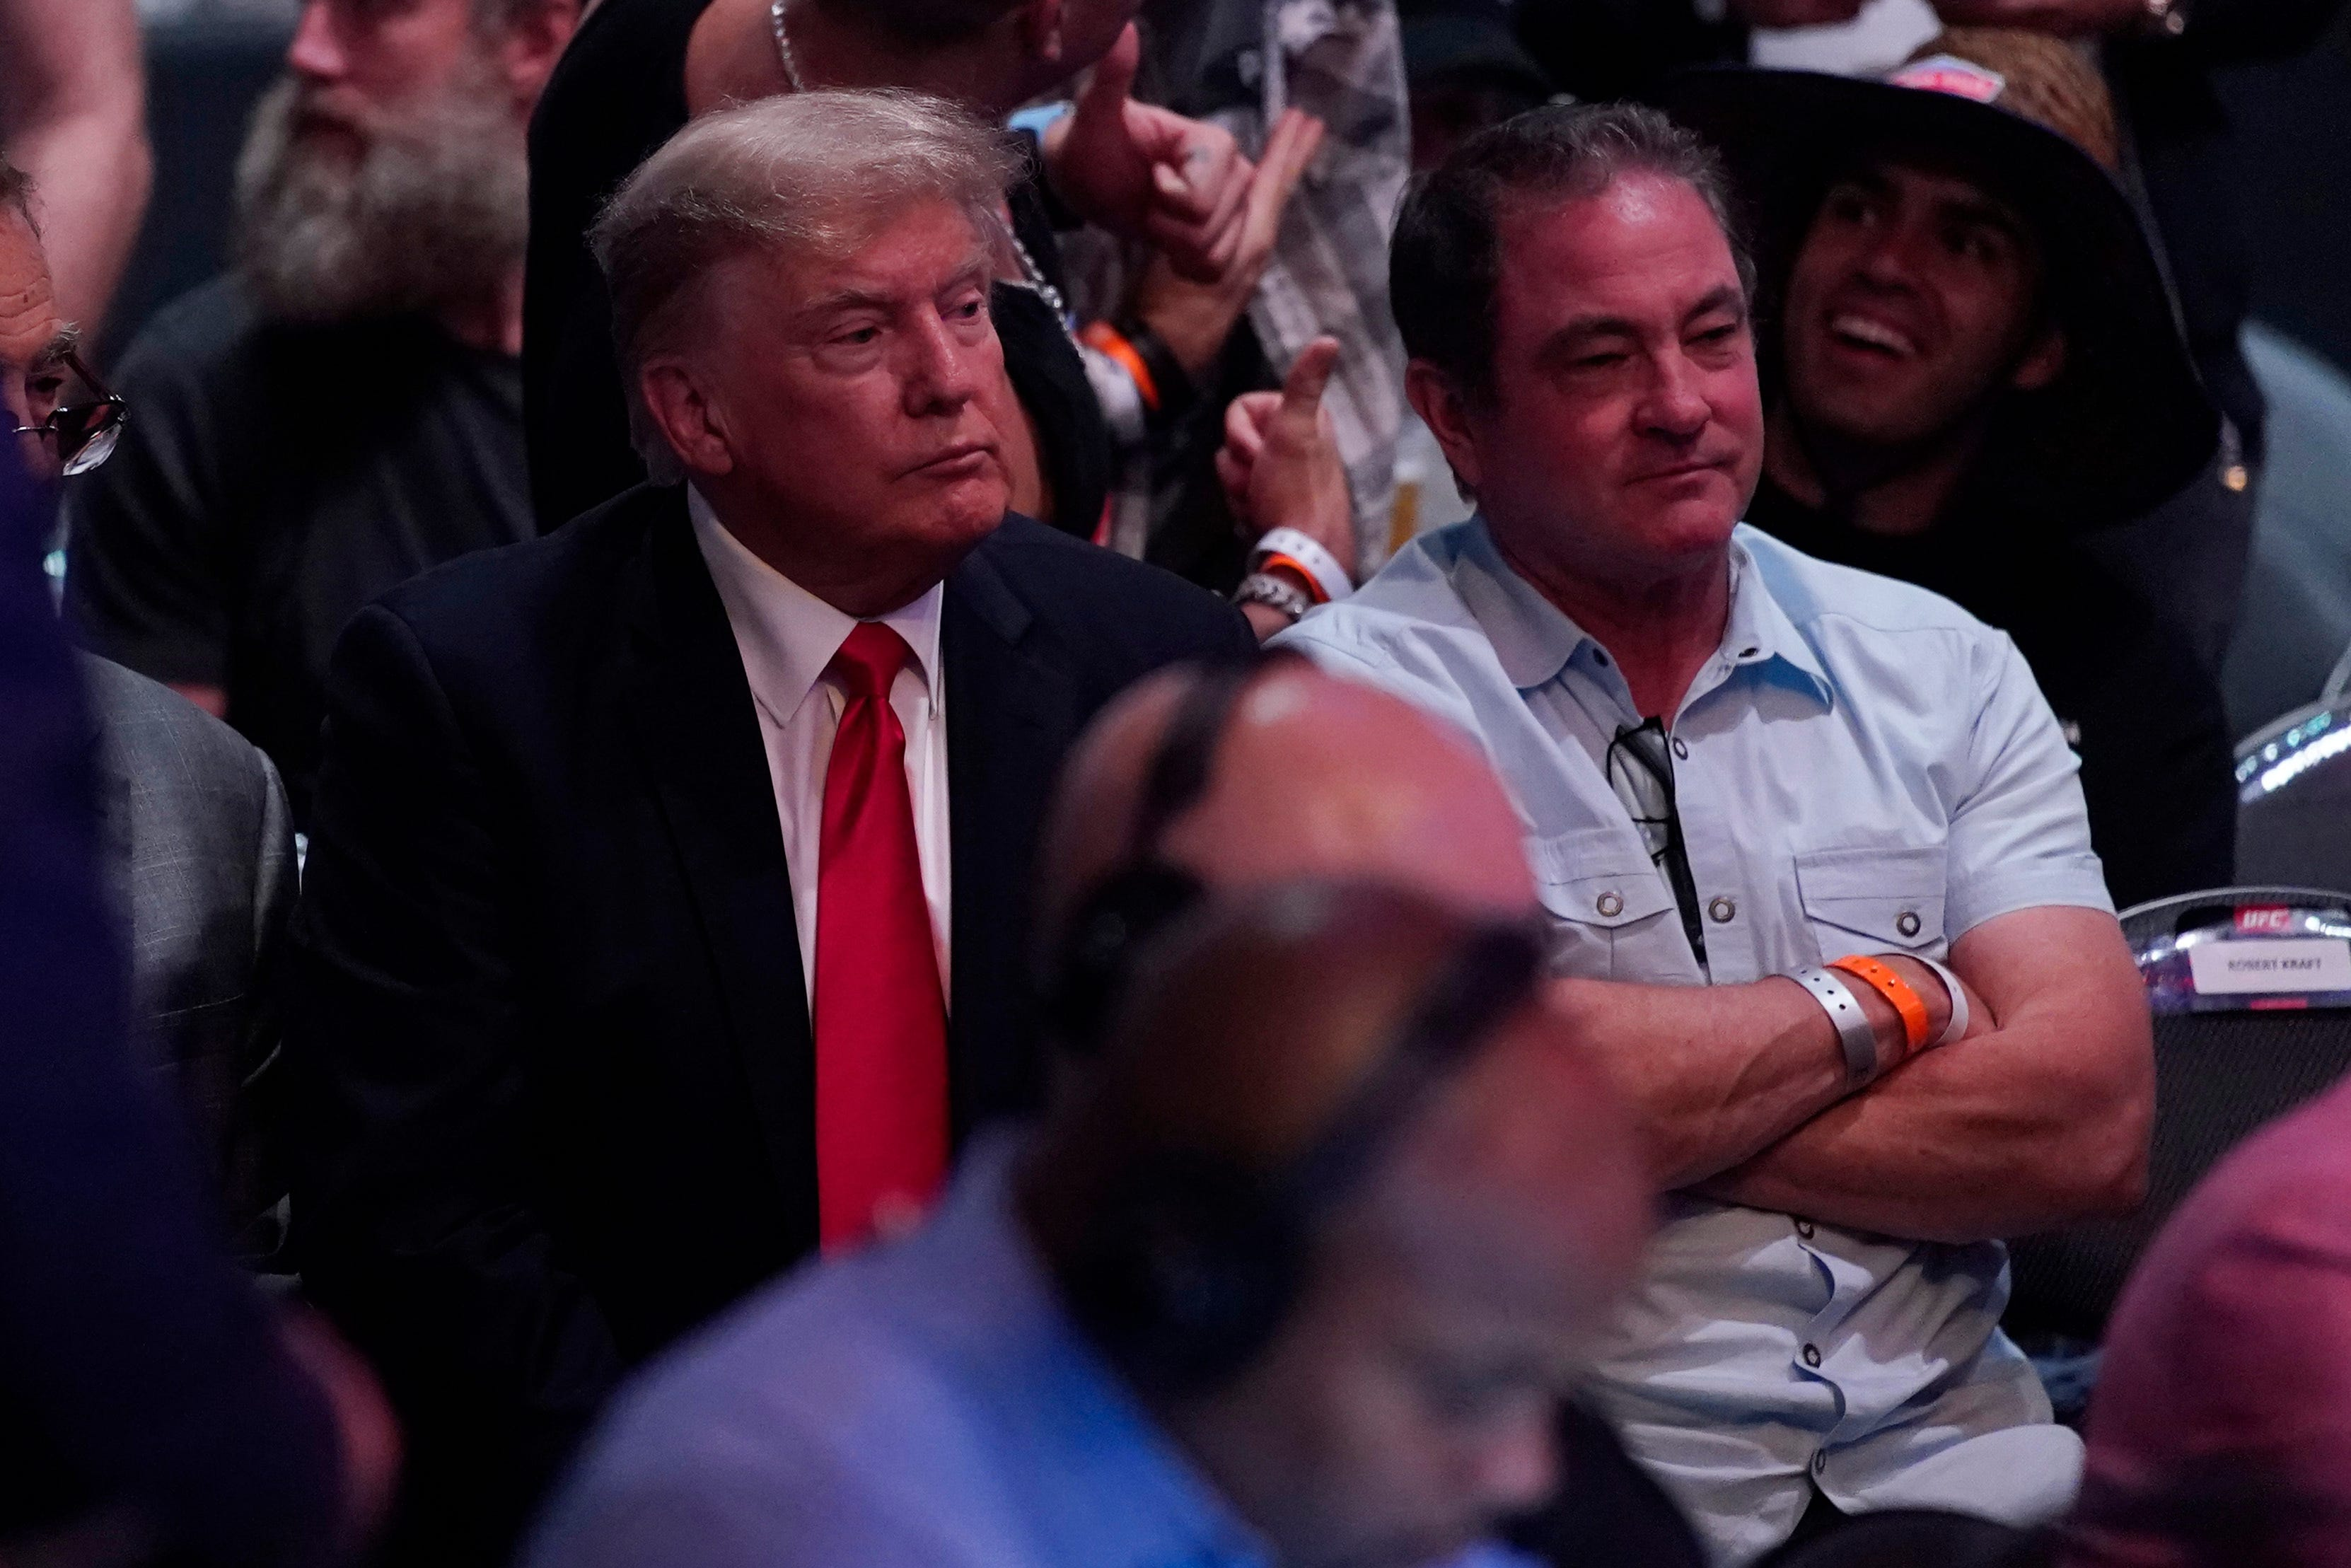 Fans cheer, chant  USA  as former President Donald Trump enters T-Mobile Arena for UFC 264